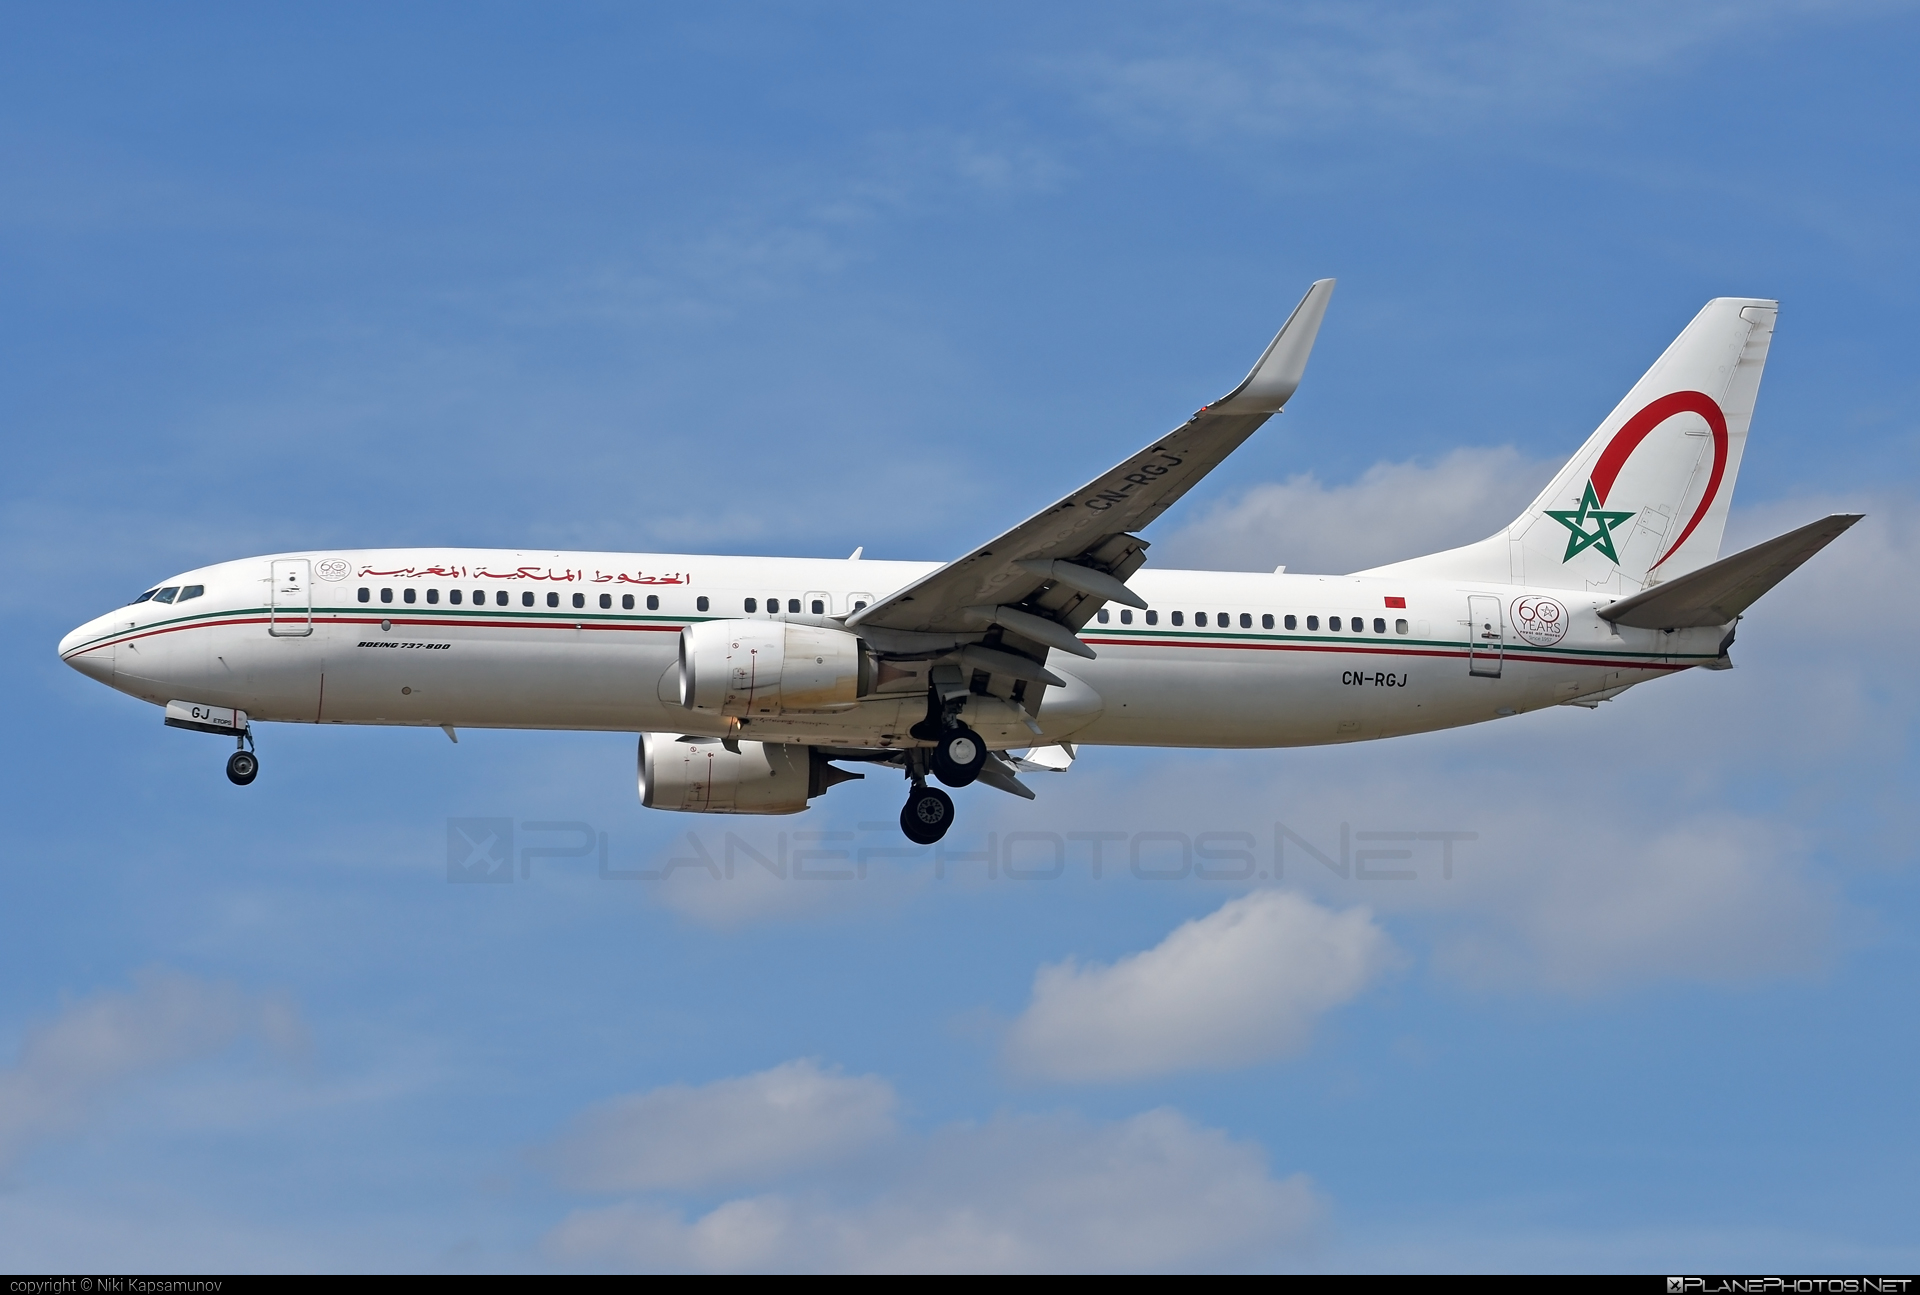 Boeing 737-800 - CN-RGJ operated by Royal Air Maroc (RAM) #b737 #b737nextgen #b737ng #boeing #boeing737 #royalairmaroc